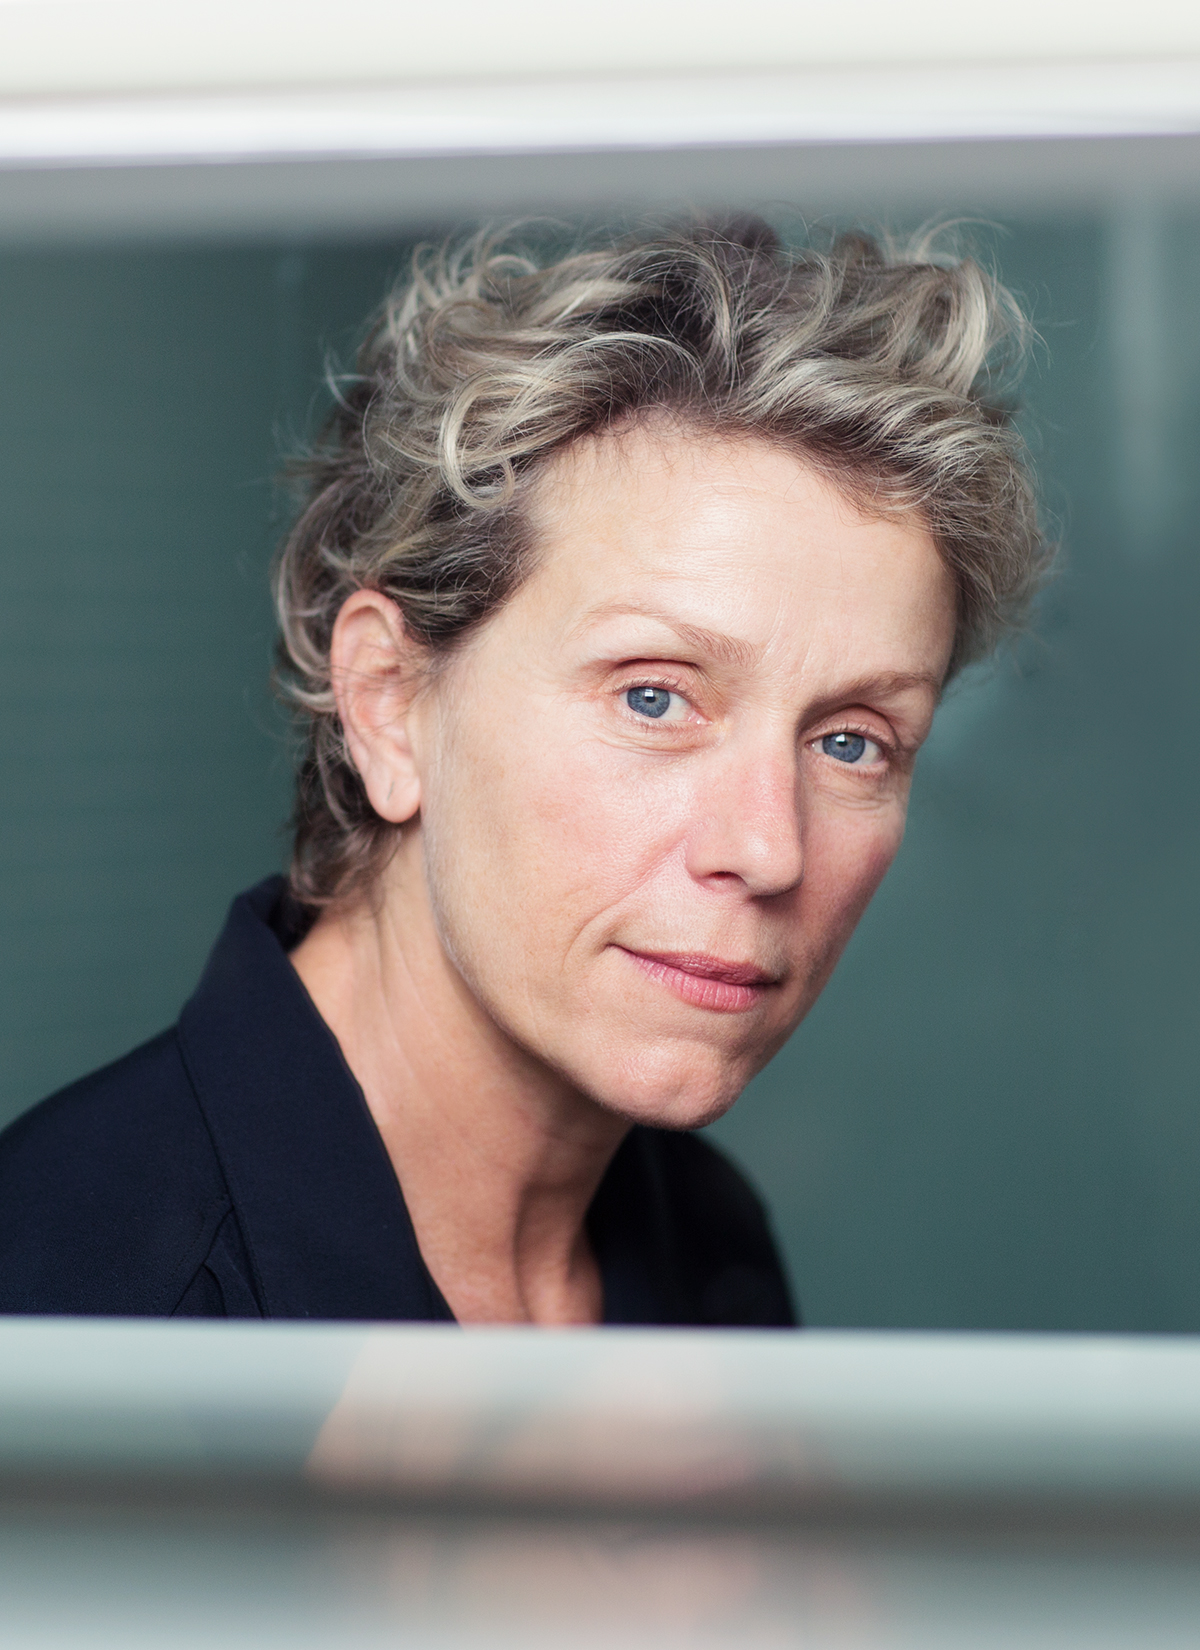 Caption: Host, Frances McDormand, Credit: Alison Rosa